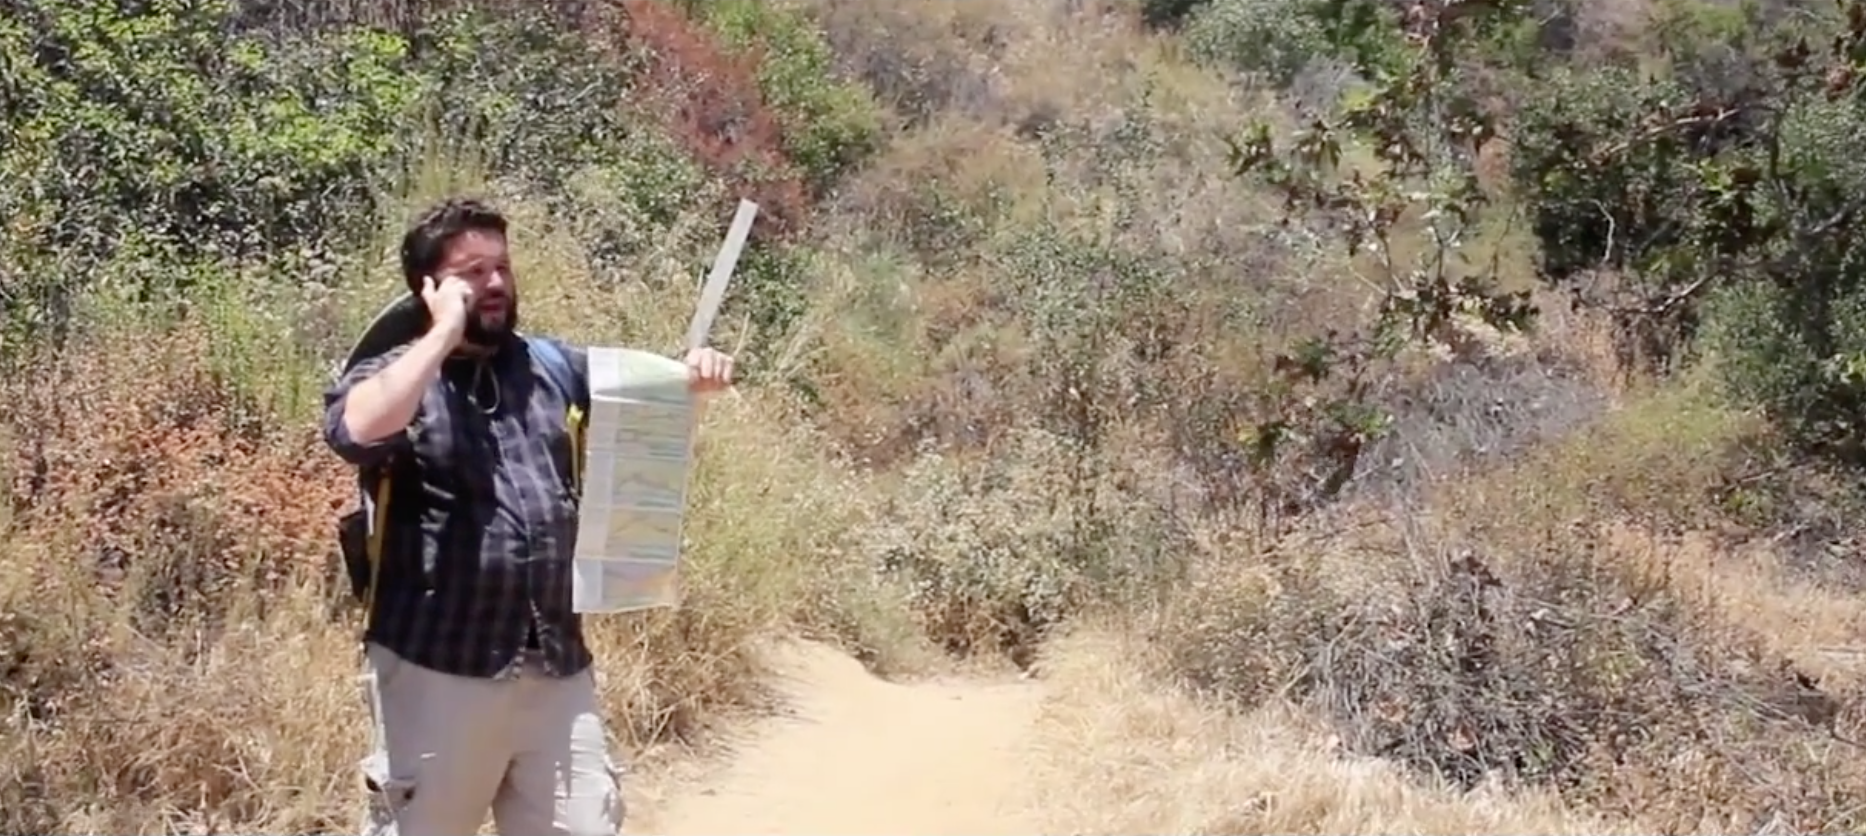 The Road Less Traveled - Directed by Ben Beckel